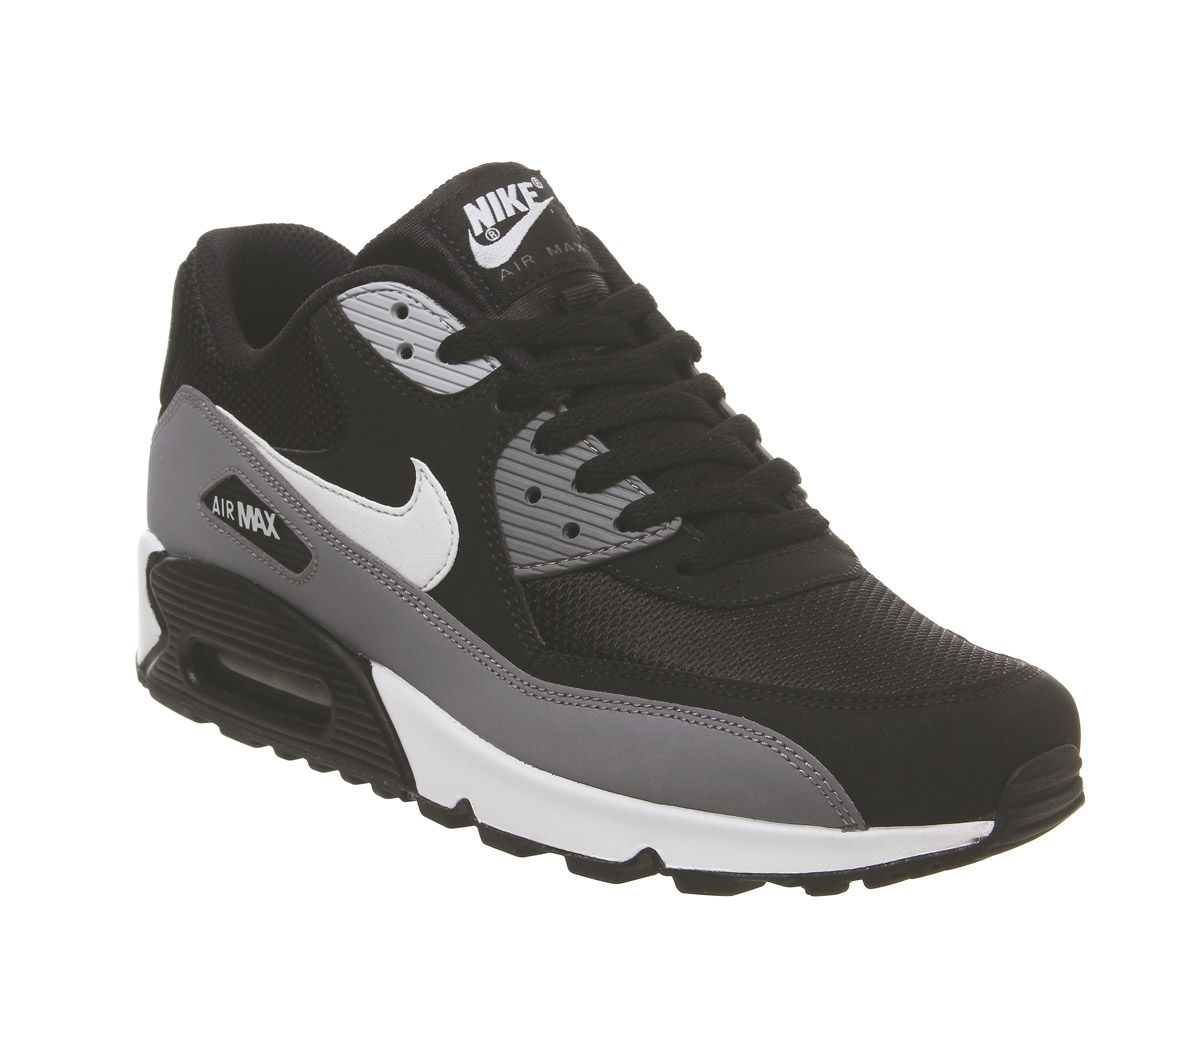 ef85dc2766 Nike Air Max 90 Trainers Black White Cool Grey Anthracite - His trainers